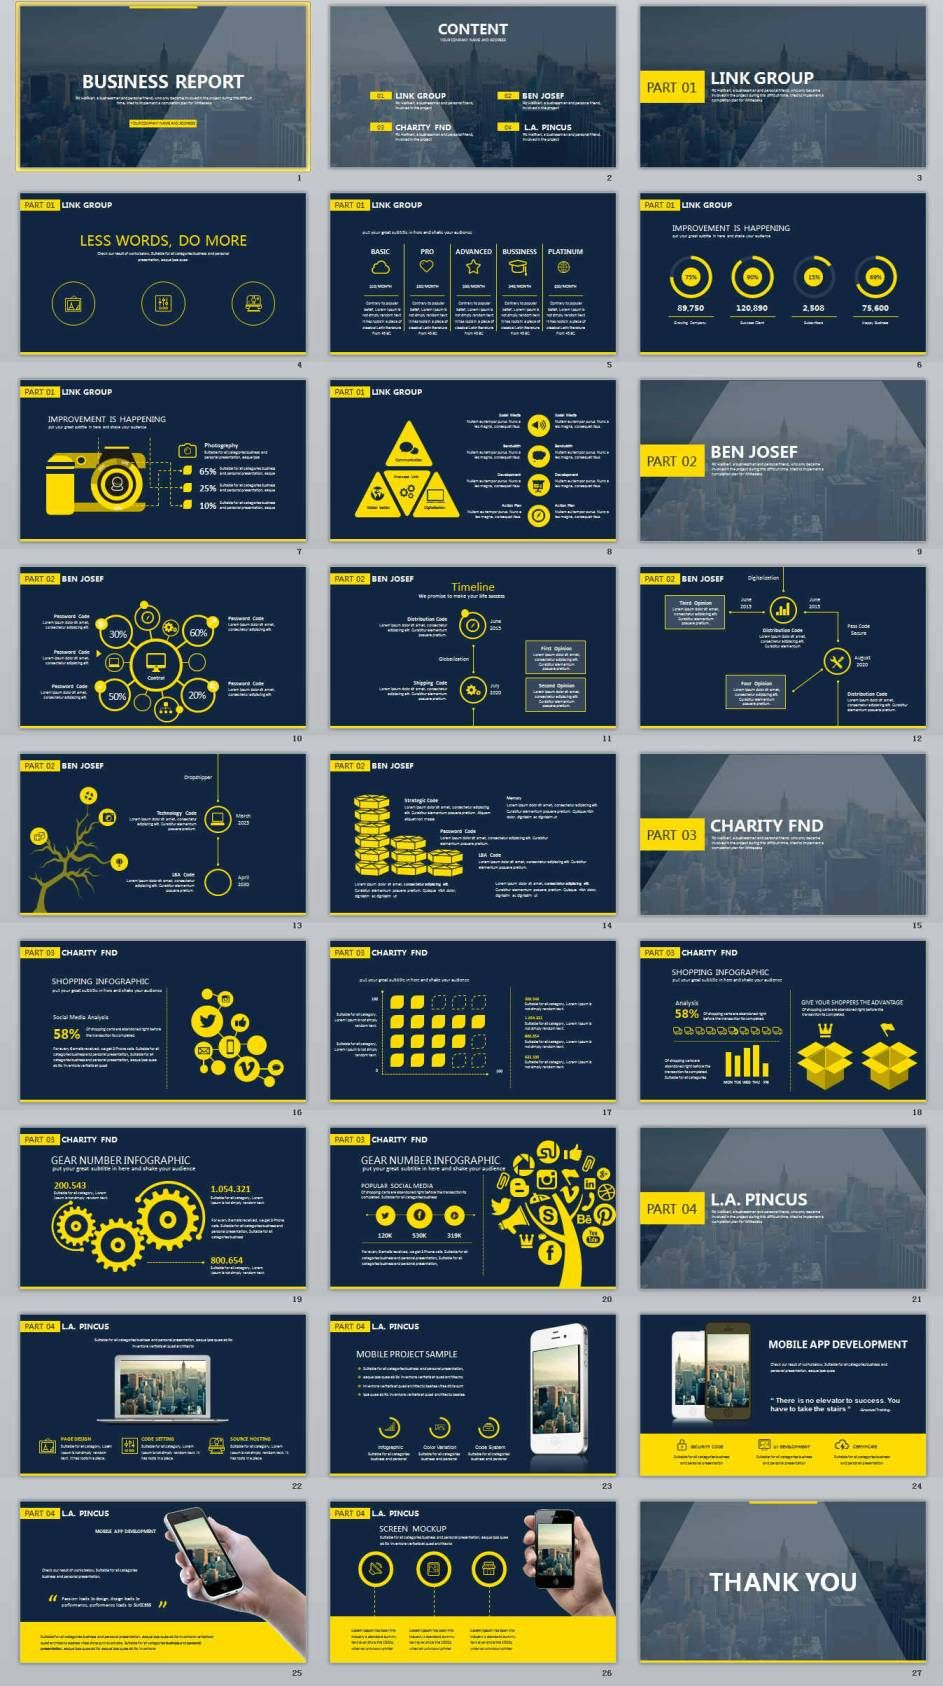 27 business report creative powerpoint template the highest 27 business report creative powerpoint template the highest quality powerpoint templates and keynote templates toneelgroepblik Image collections